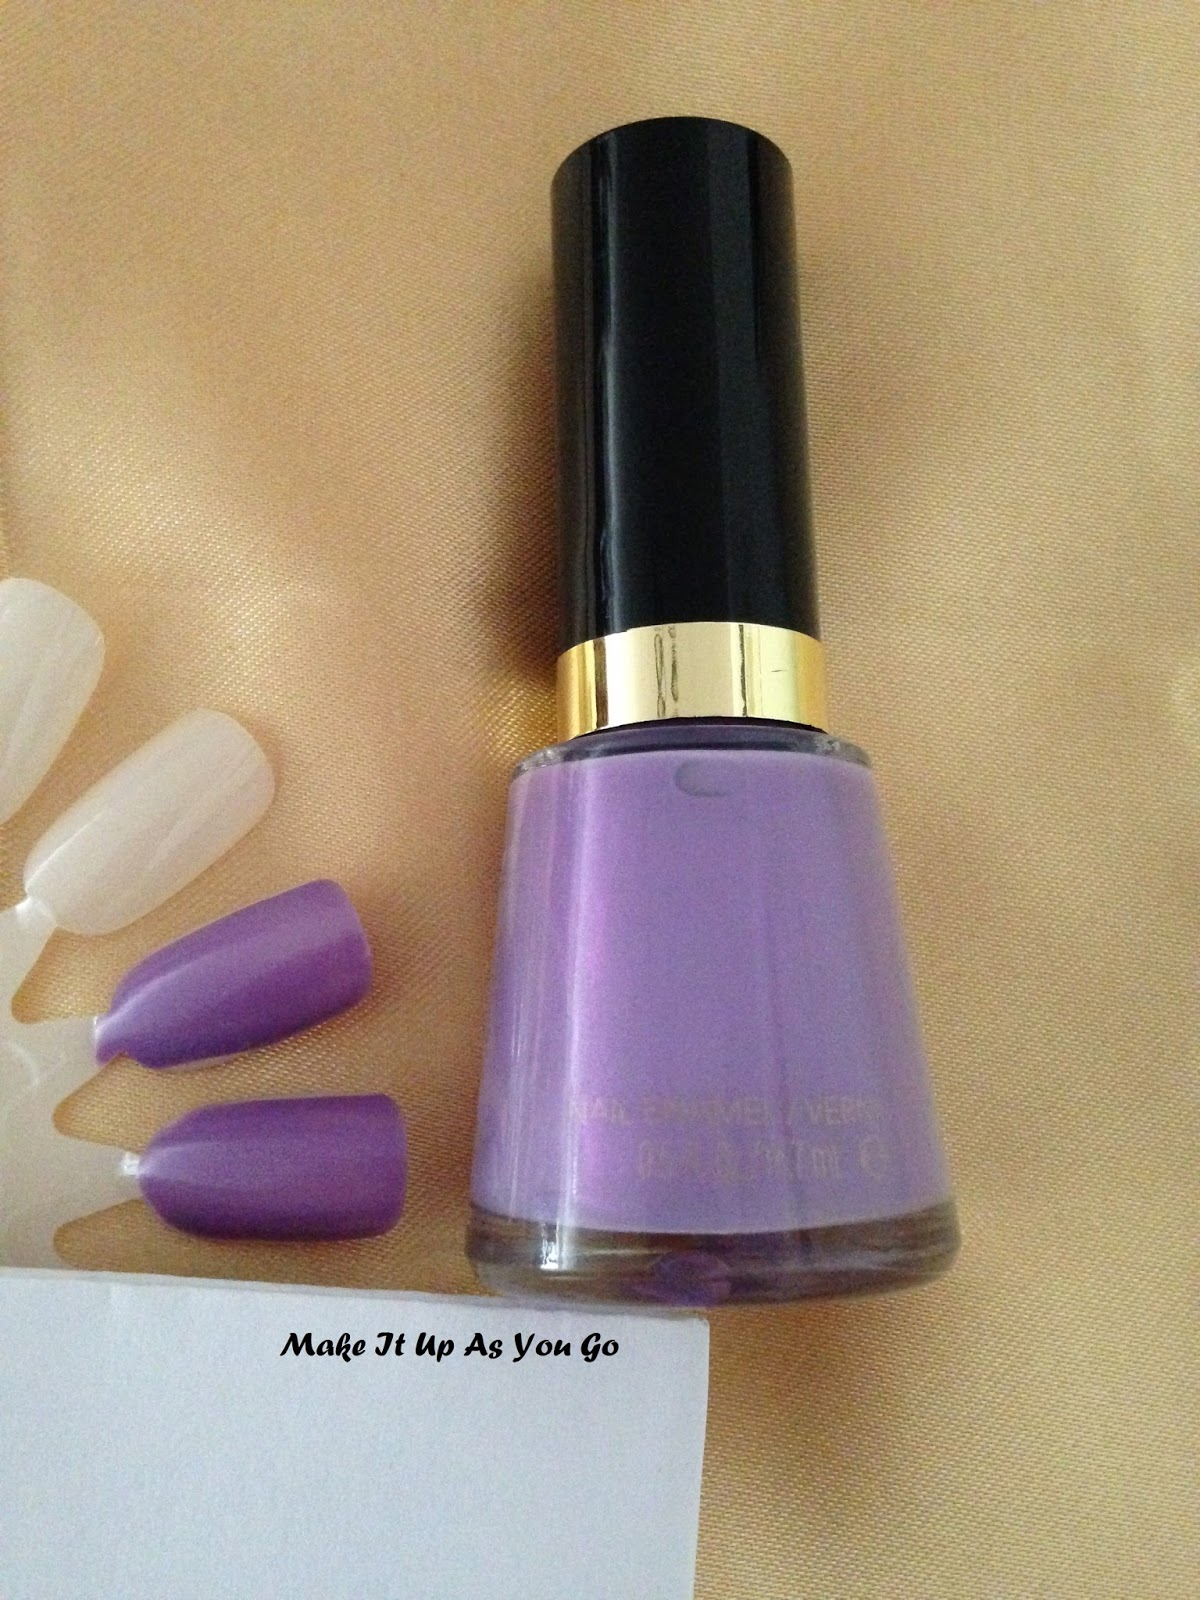 Make It Up As You Go: Nail Polish Change - Wet n Wild Megalast in ...